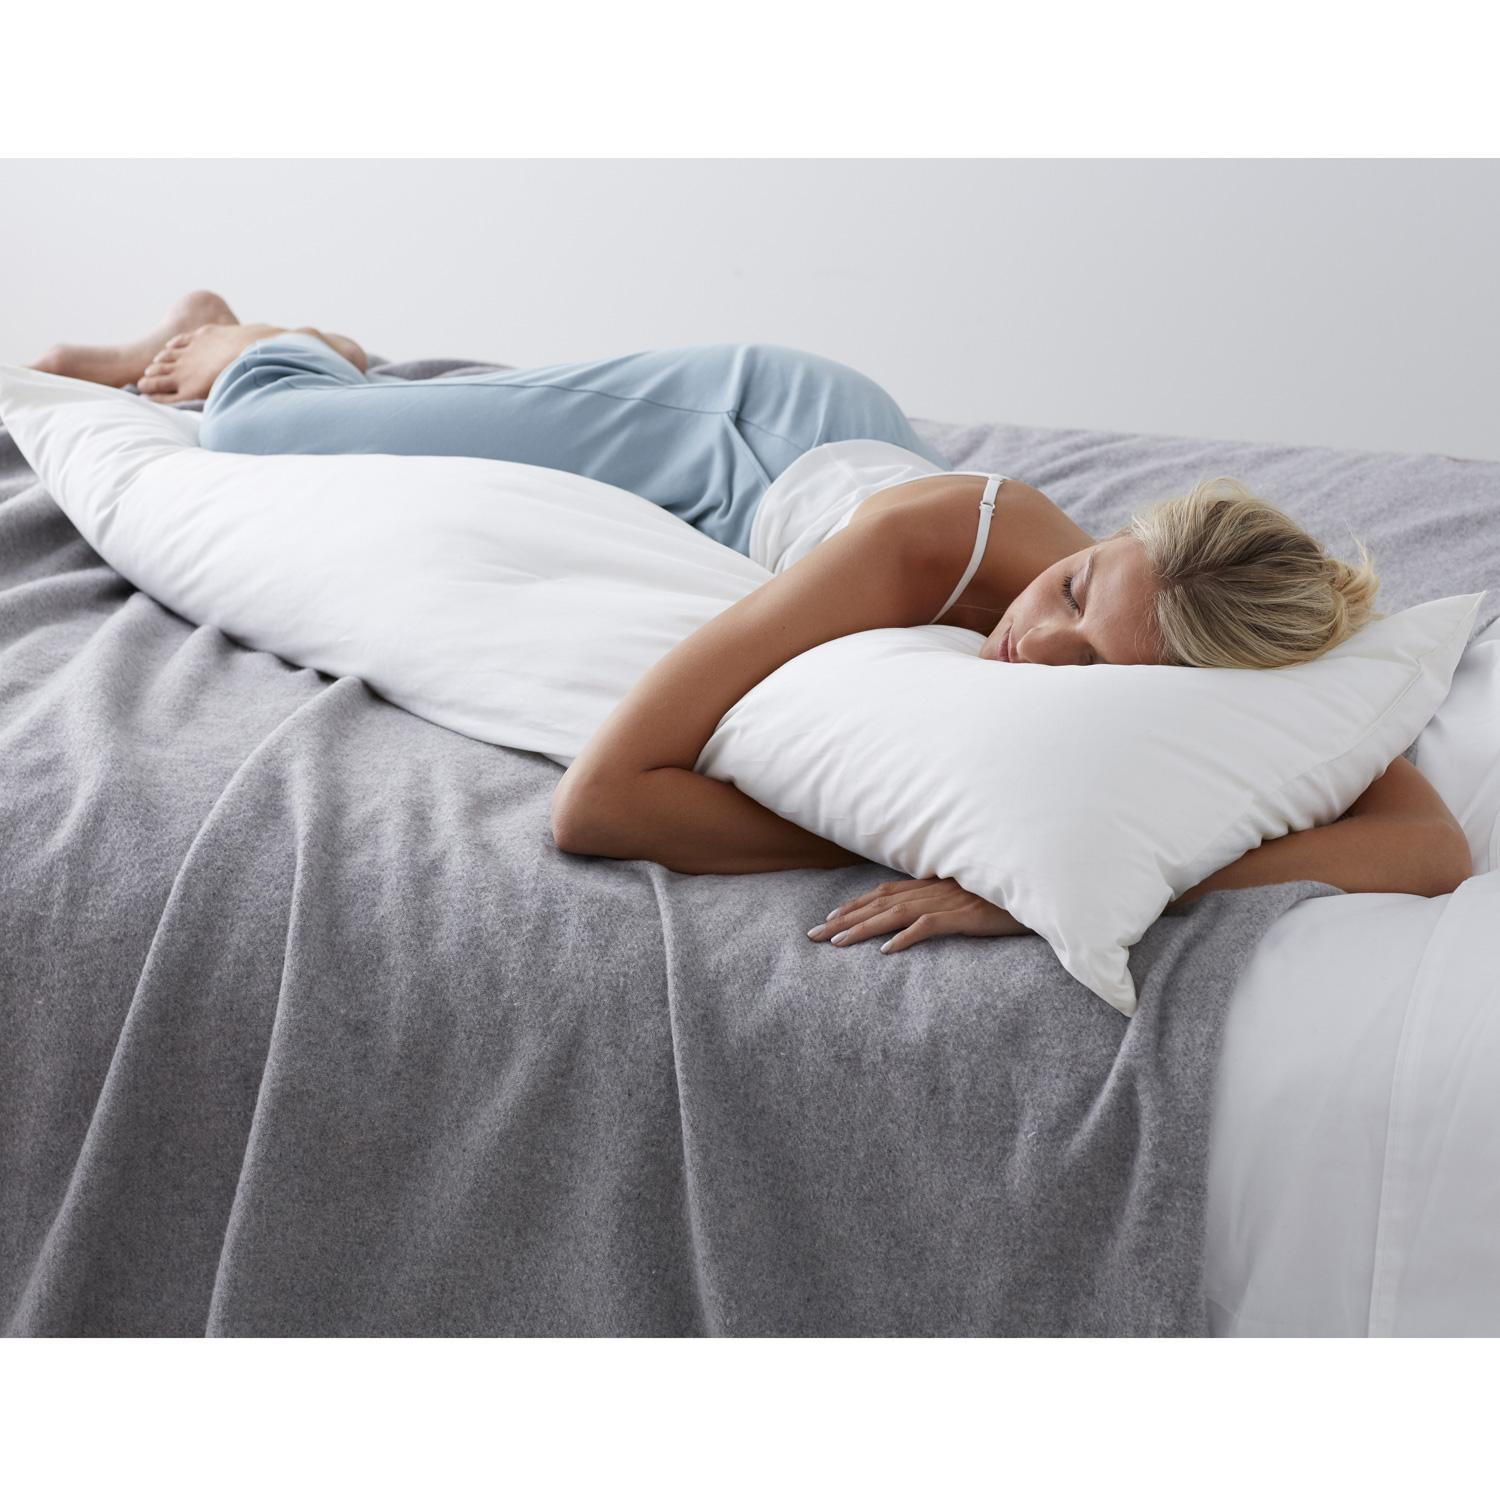 Firm Density, 95% Feathers/5% Down Fill, Body Pillow, 20 x 72